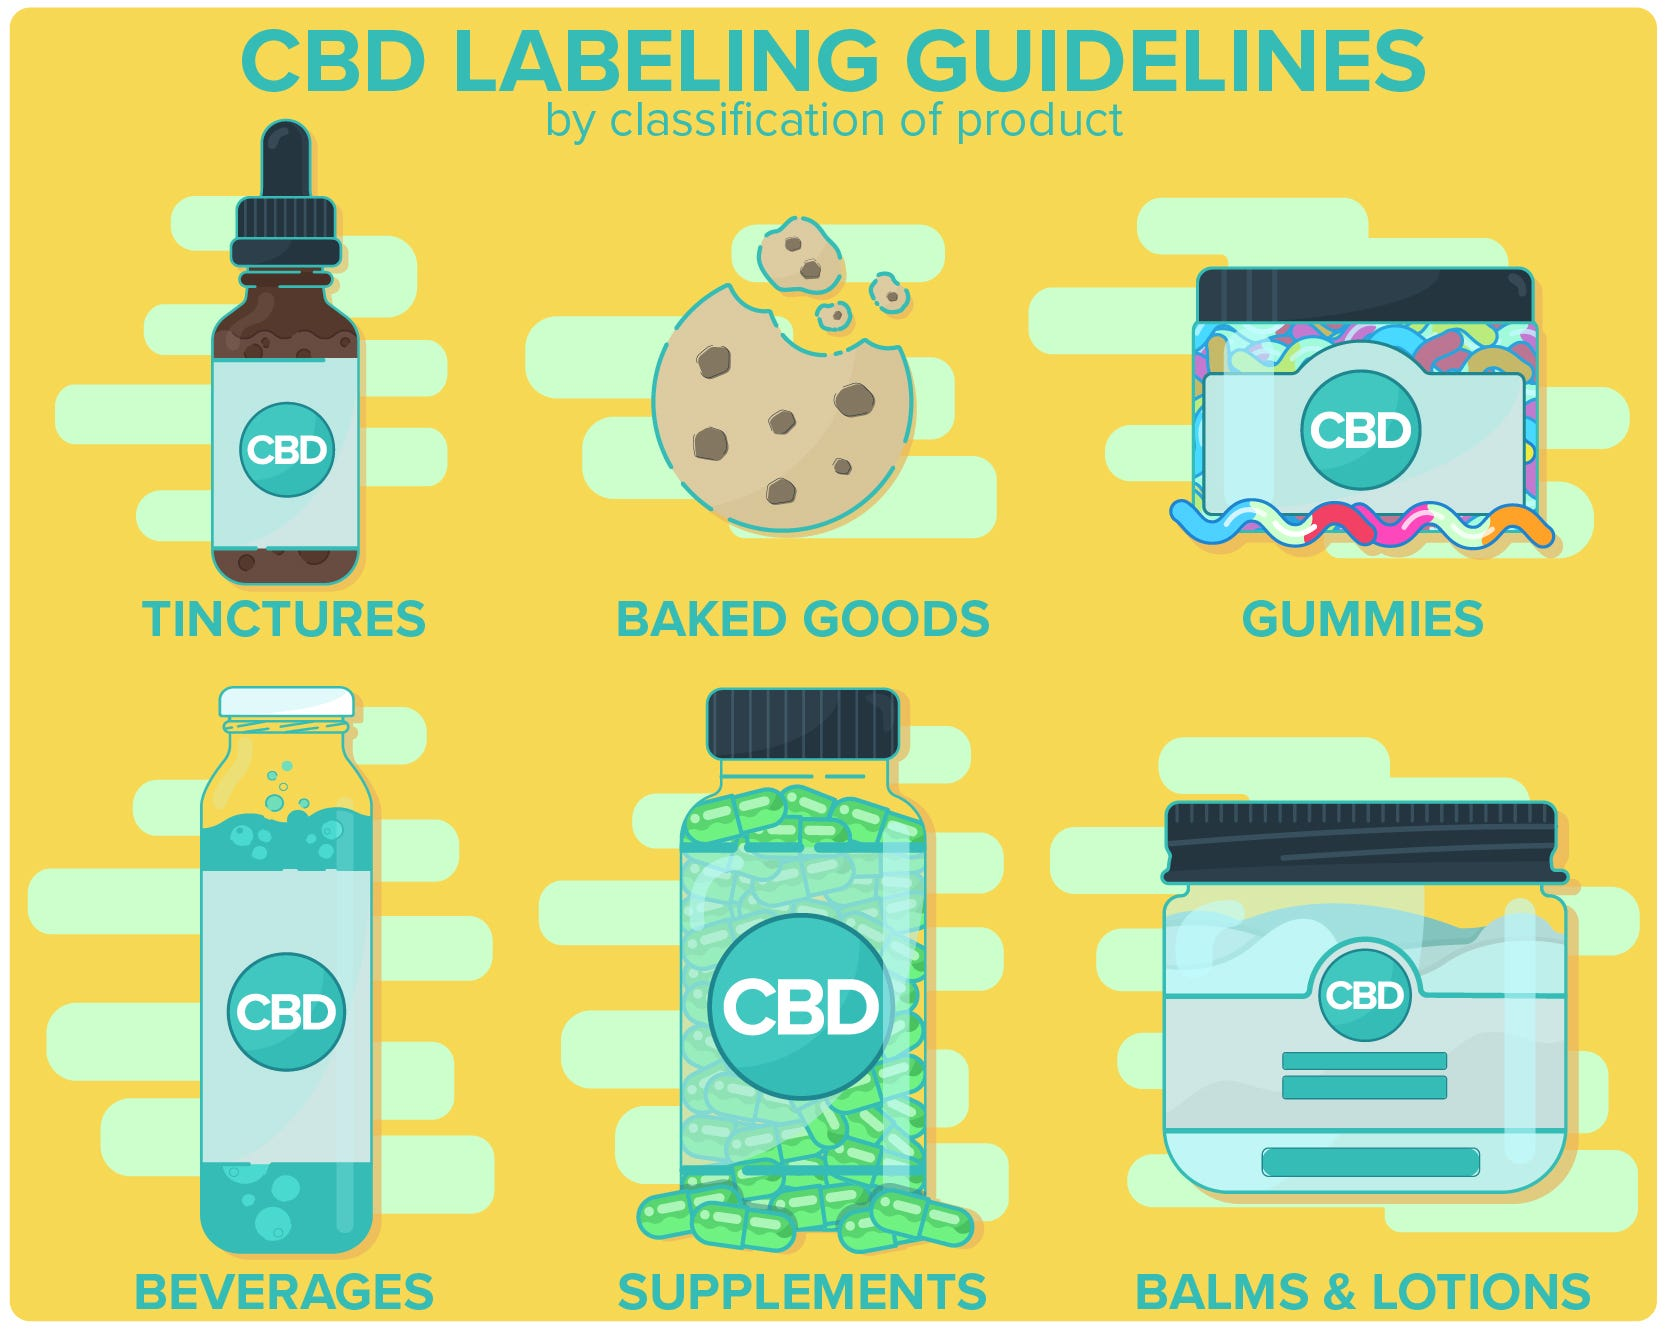 type of products for CBD labeling